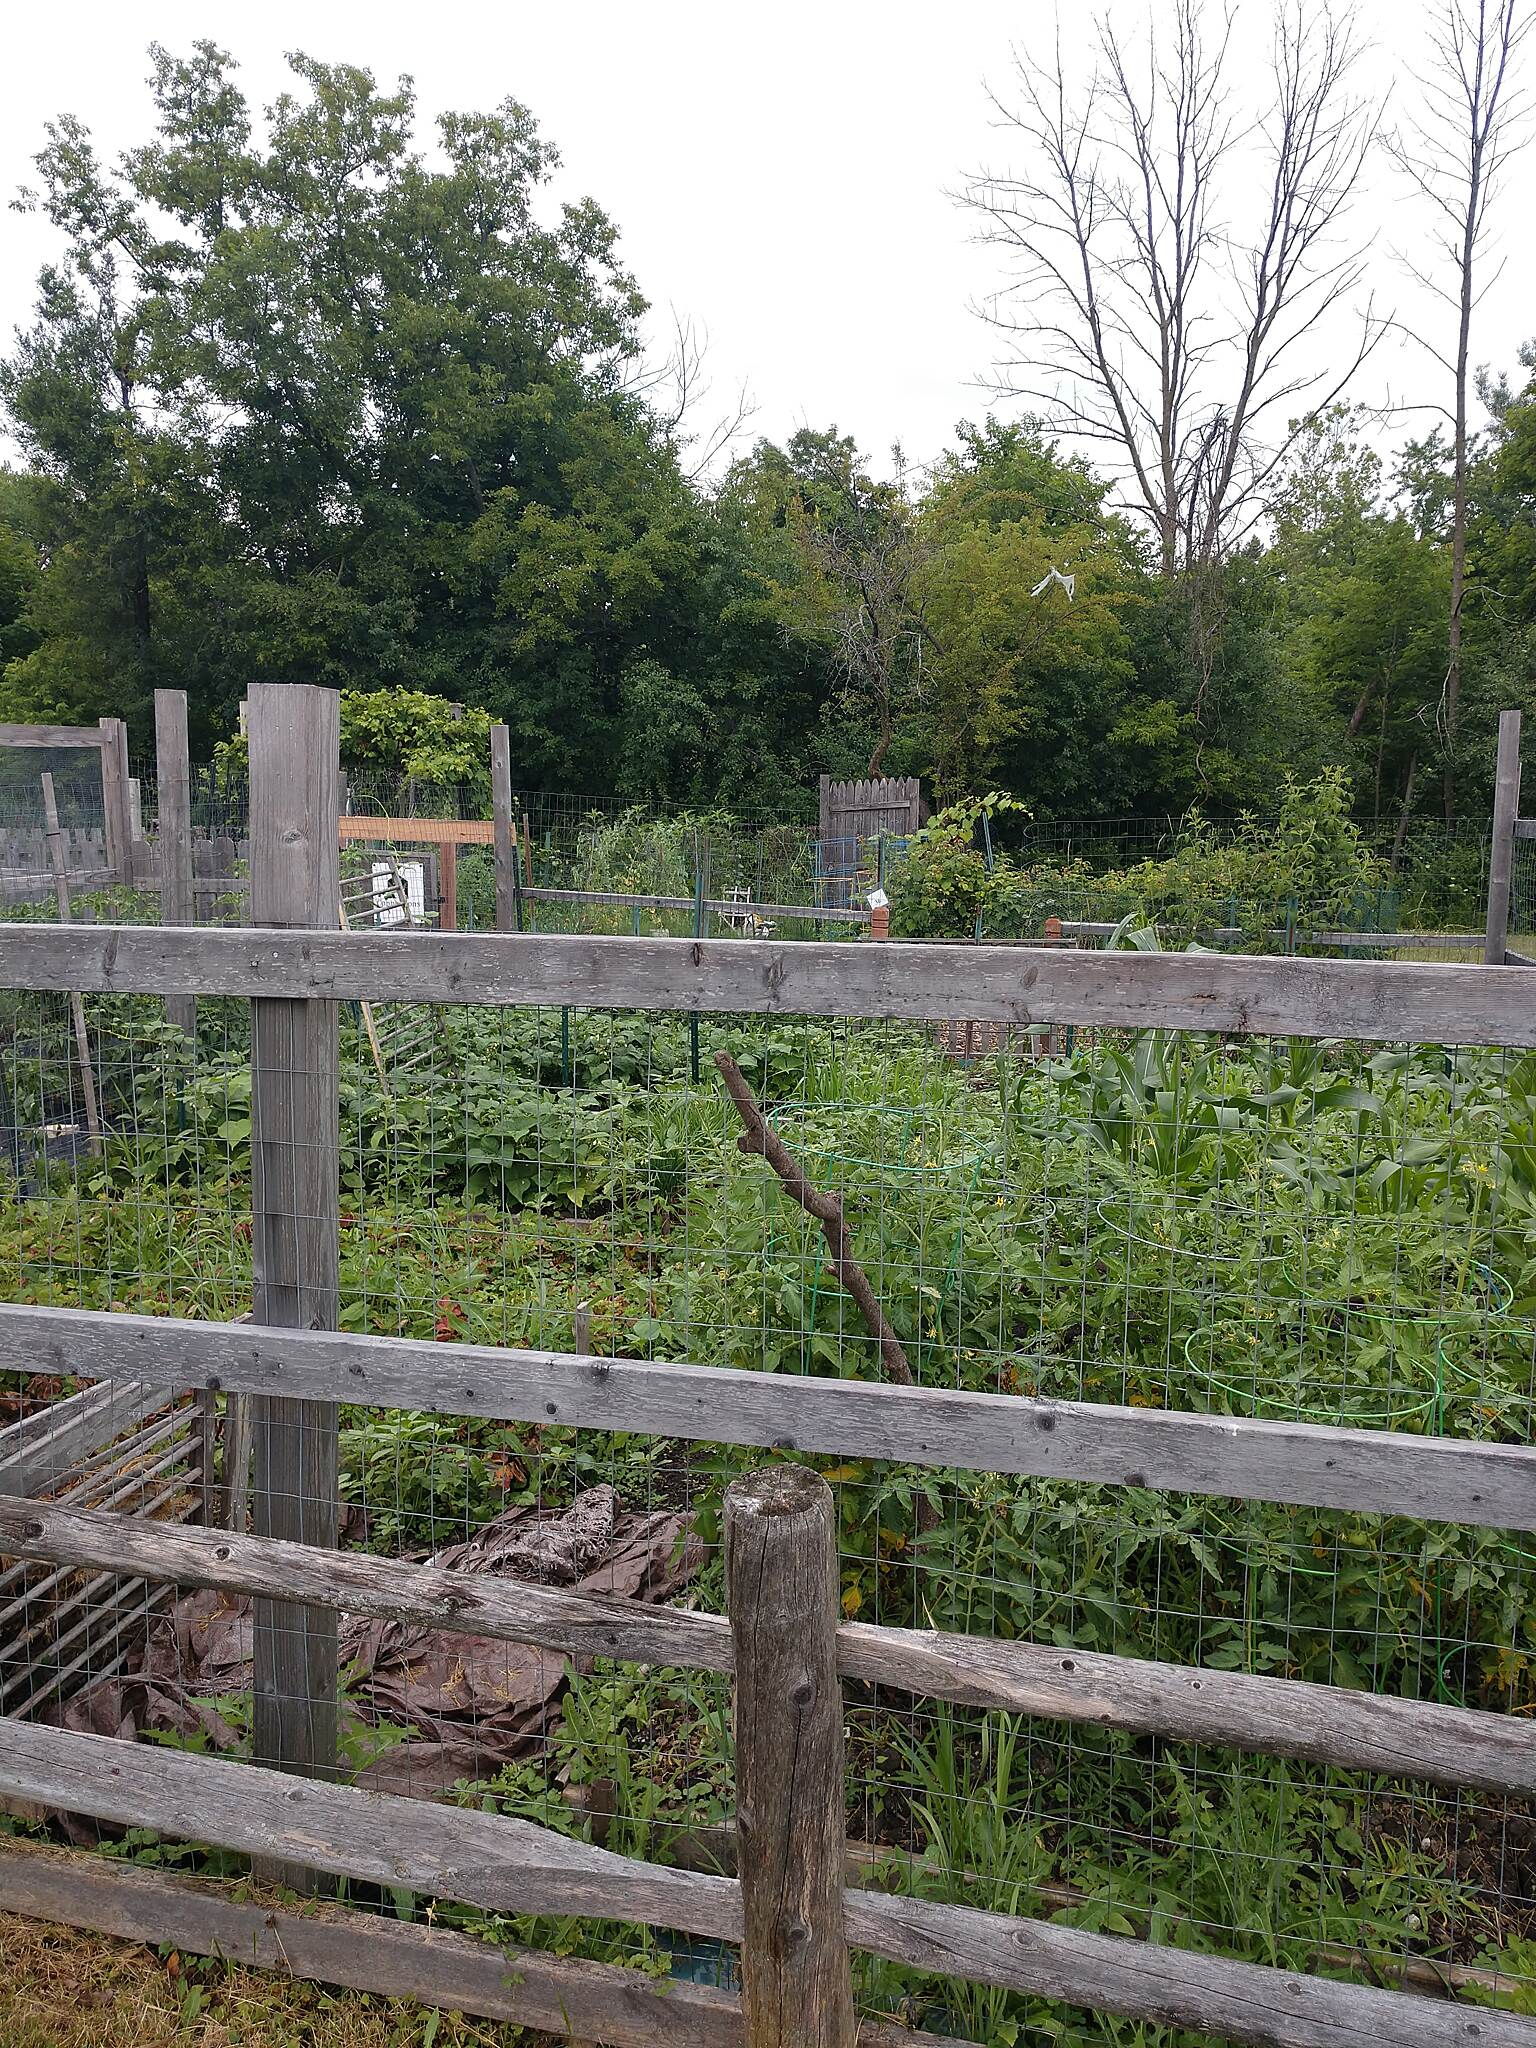 North Shore Channel Trail community garden